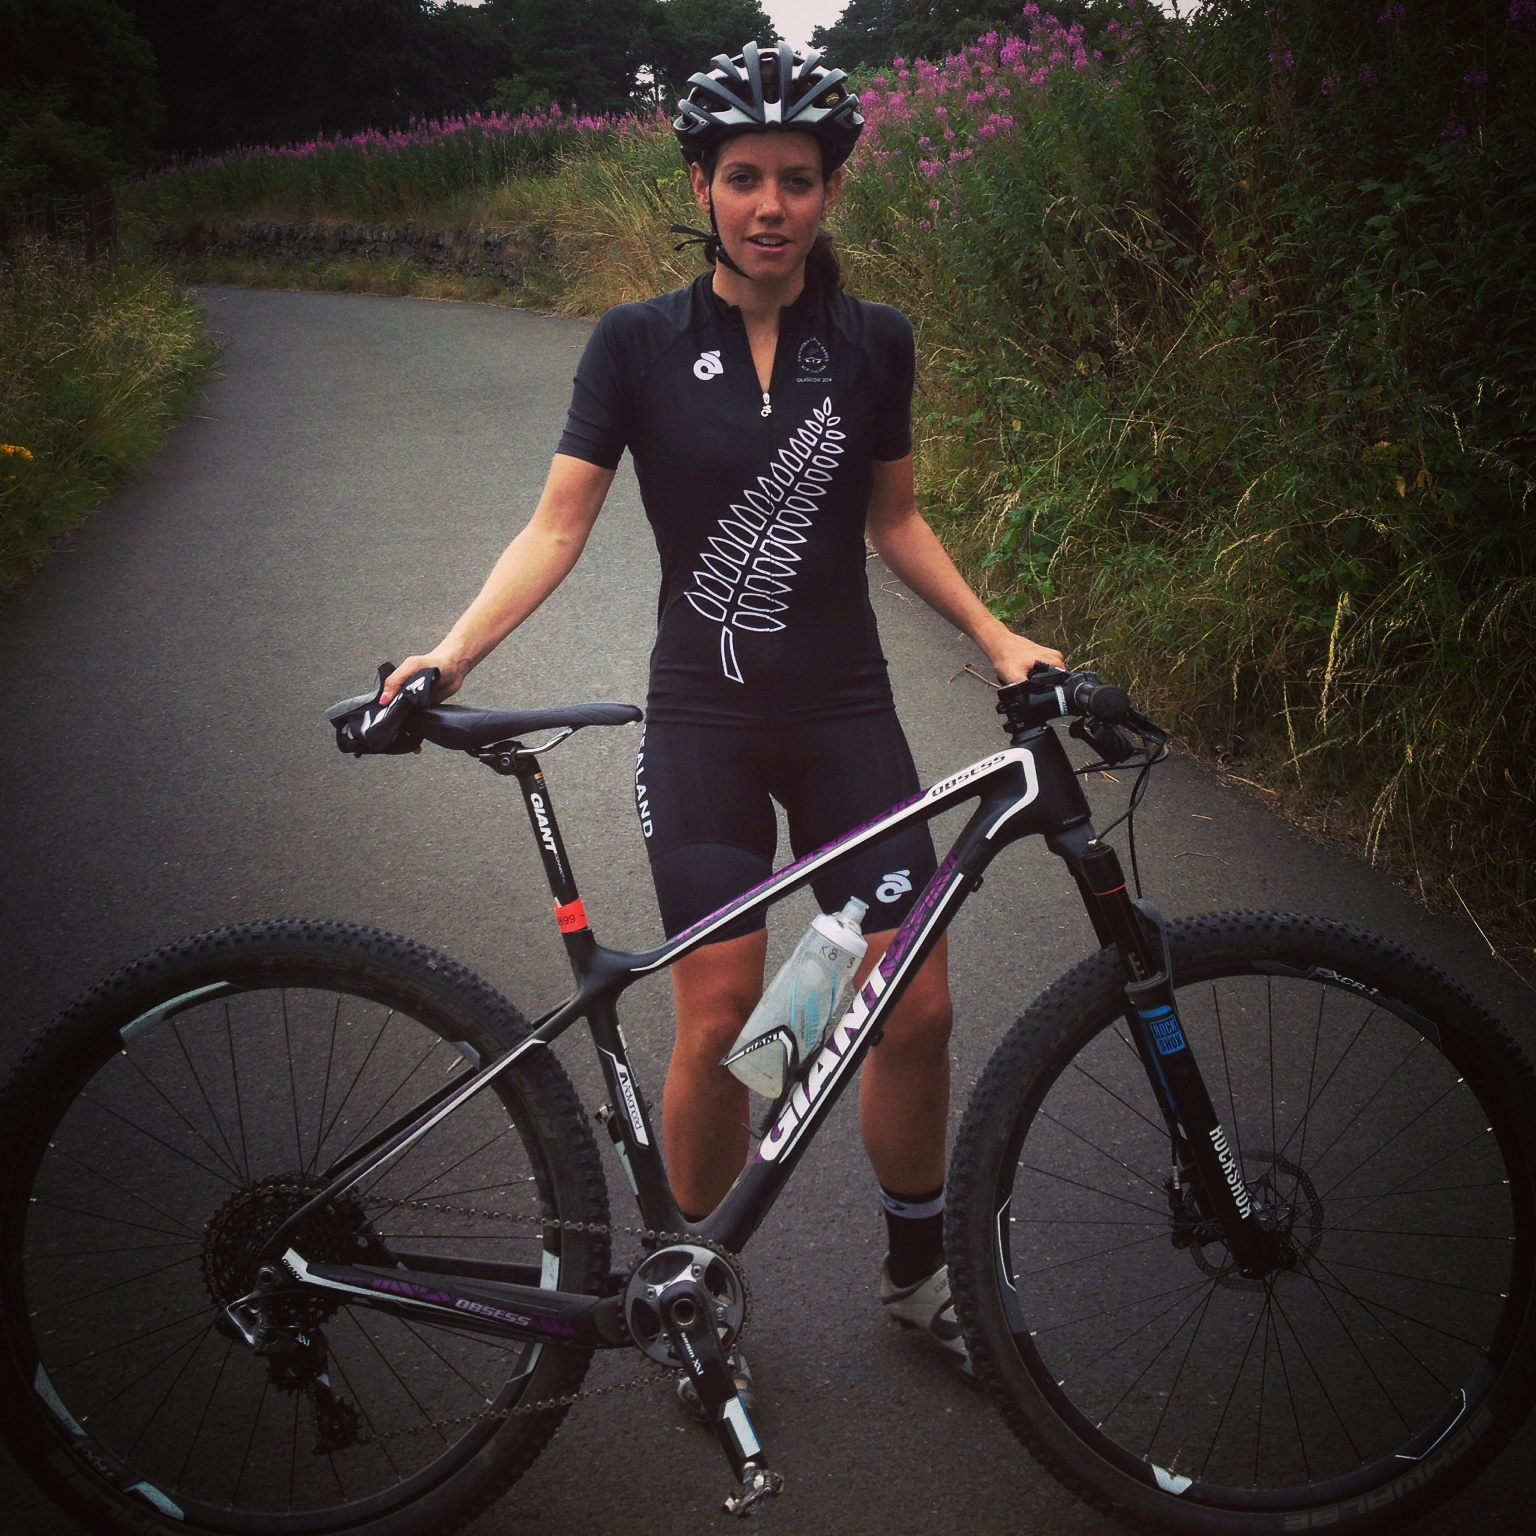 Snazzy new kit and Giant Obsess race bike ready to check out the track